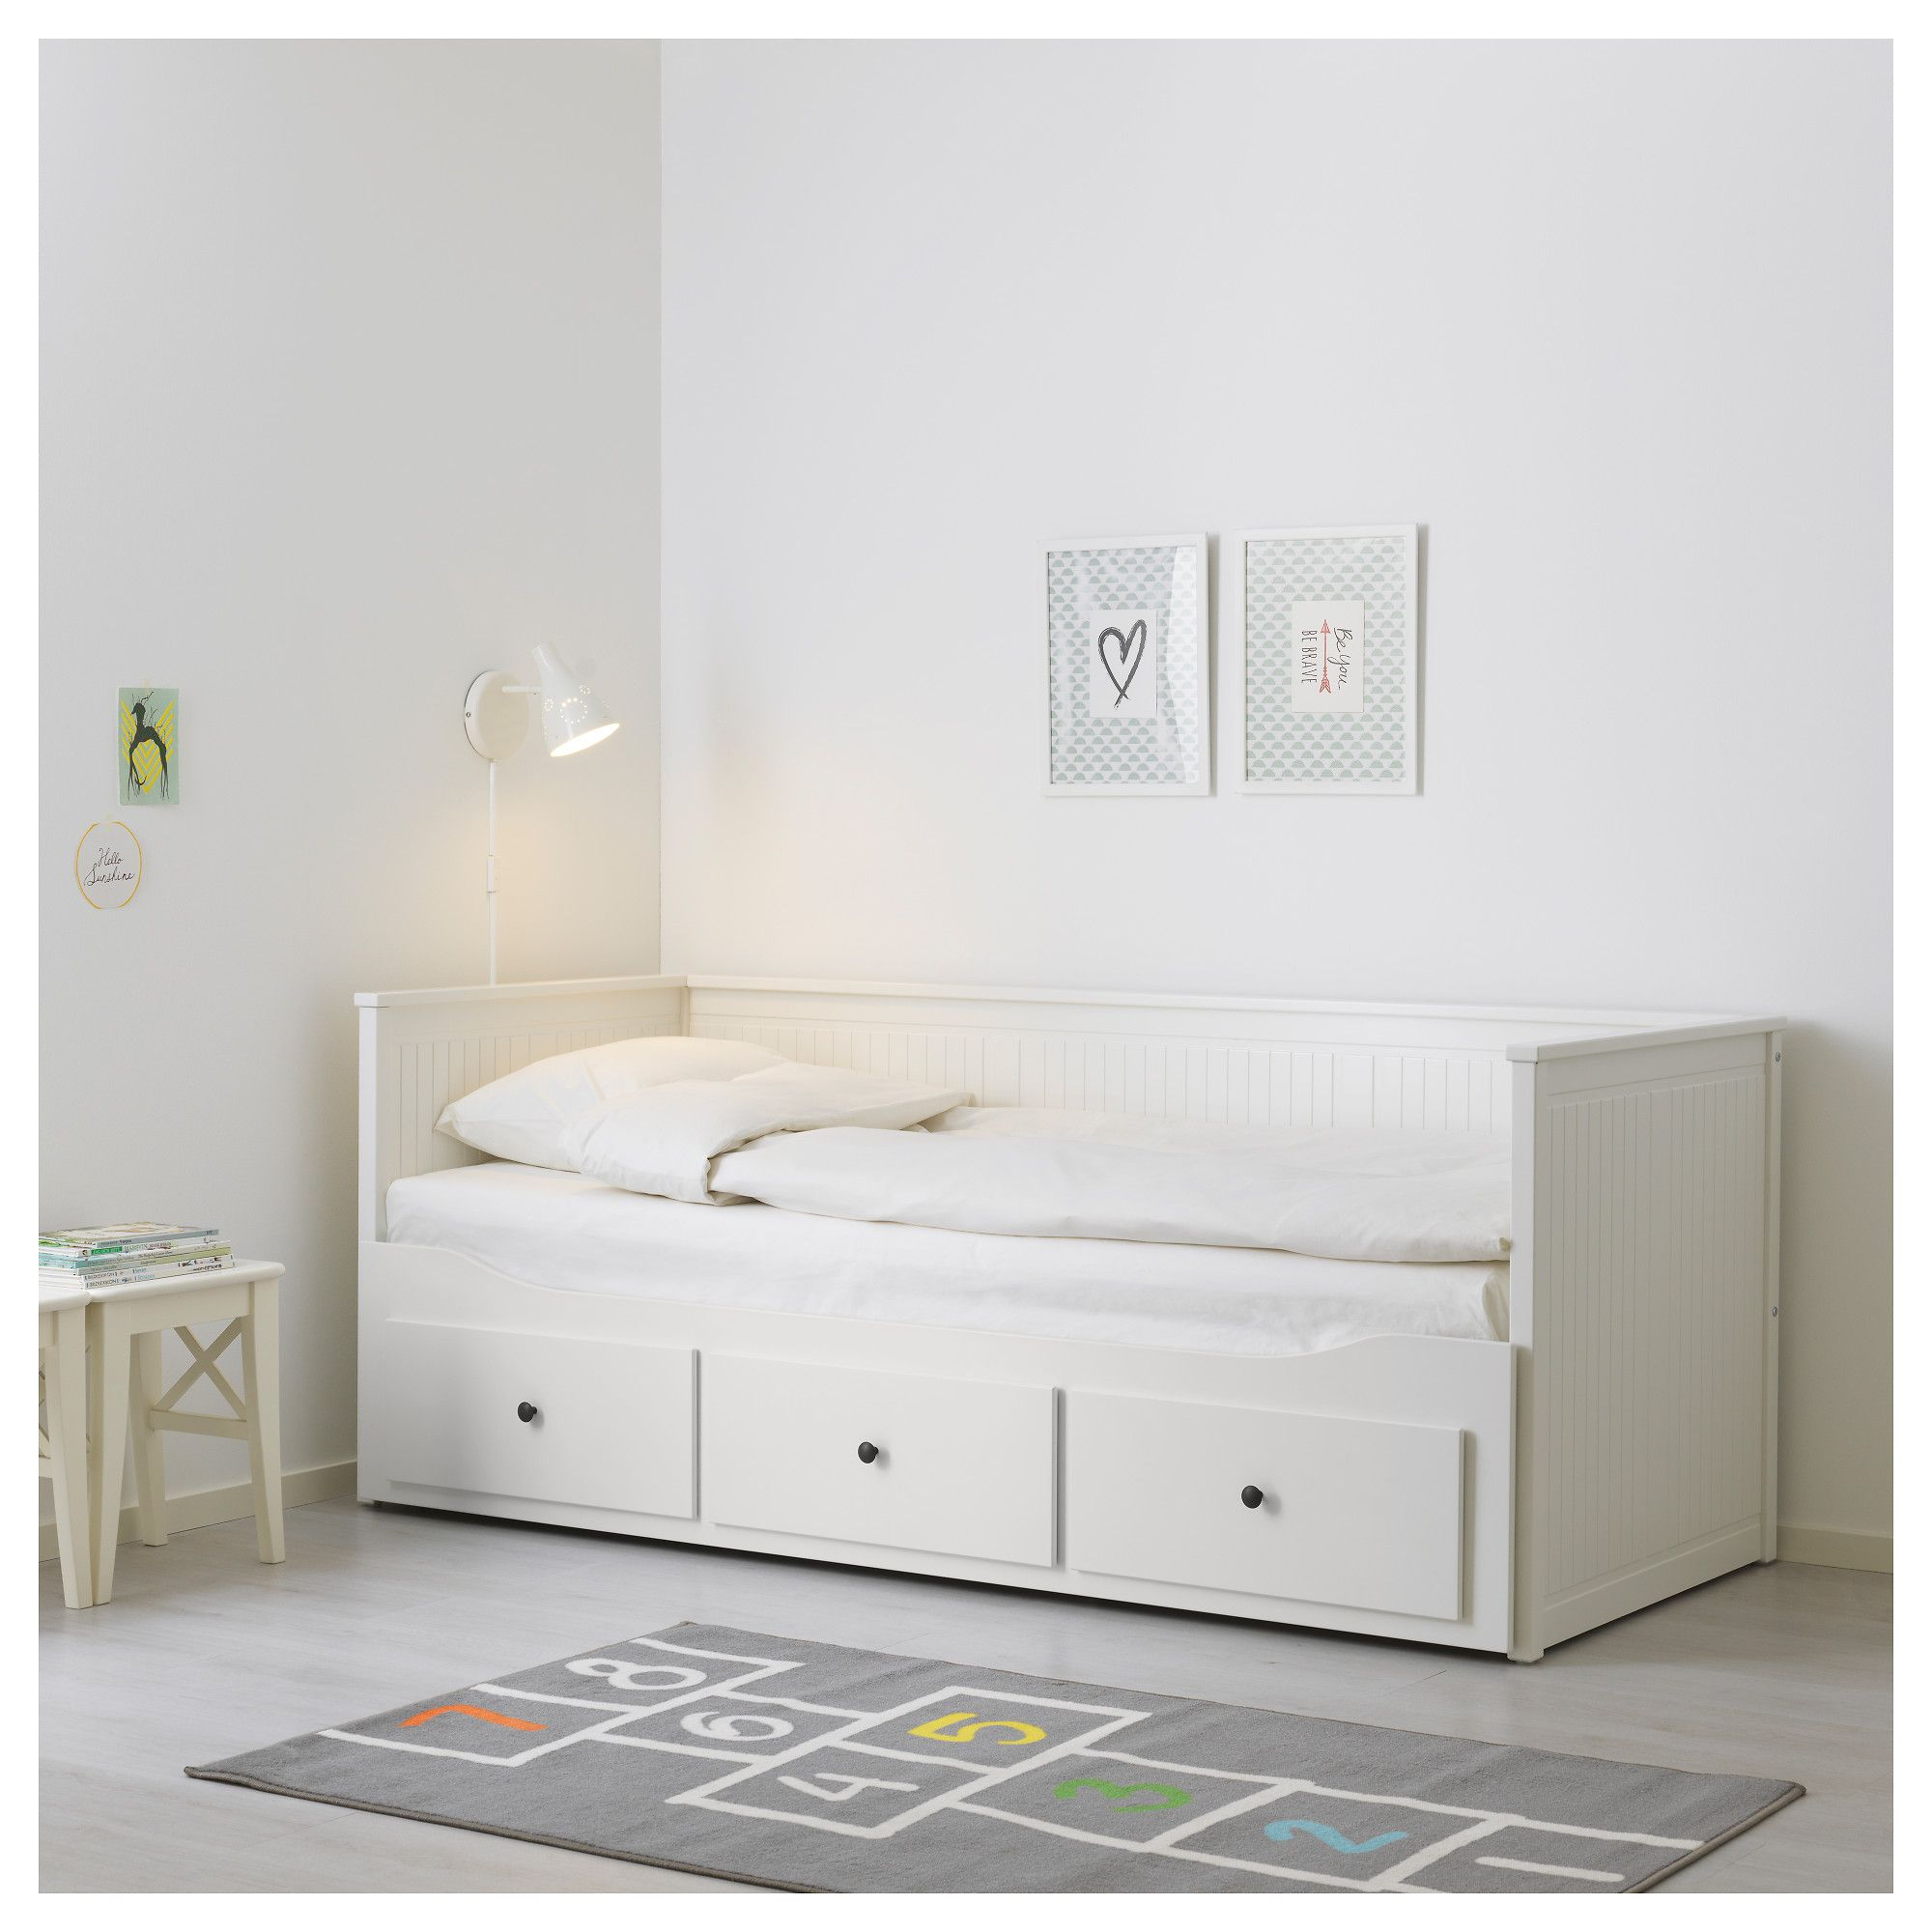 Hemnes Daybed Frame With 3 Drawers White Kid S Haven In